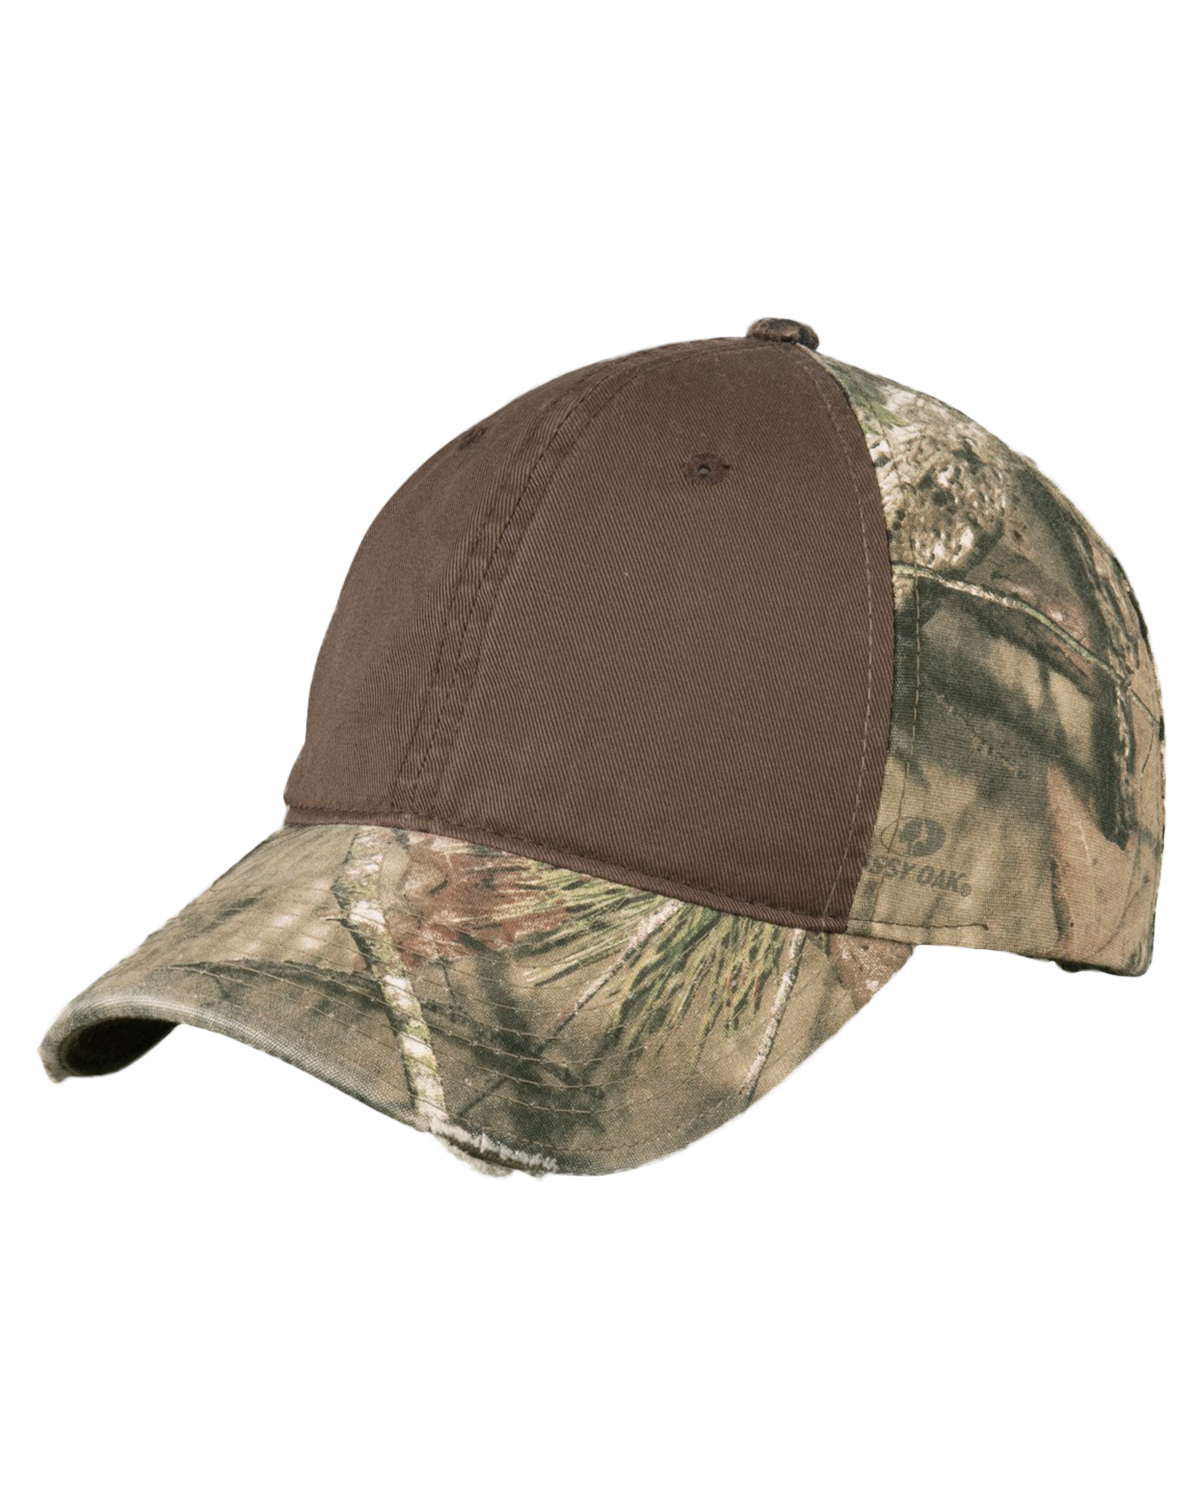 Port Authority C807 Unisex Camo Cap with Contrast Front Panel Mossy Oak Break-UP INFINITY at GotApparel